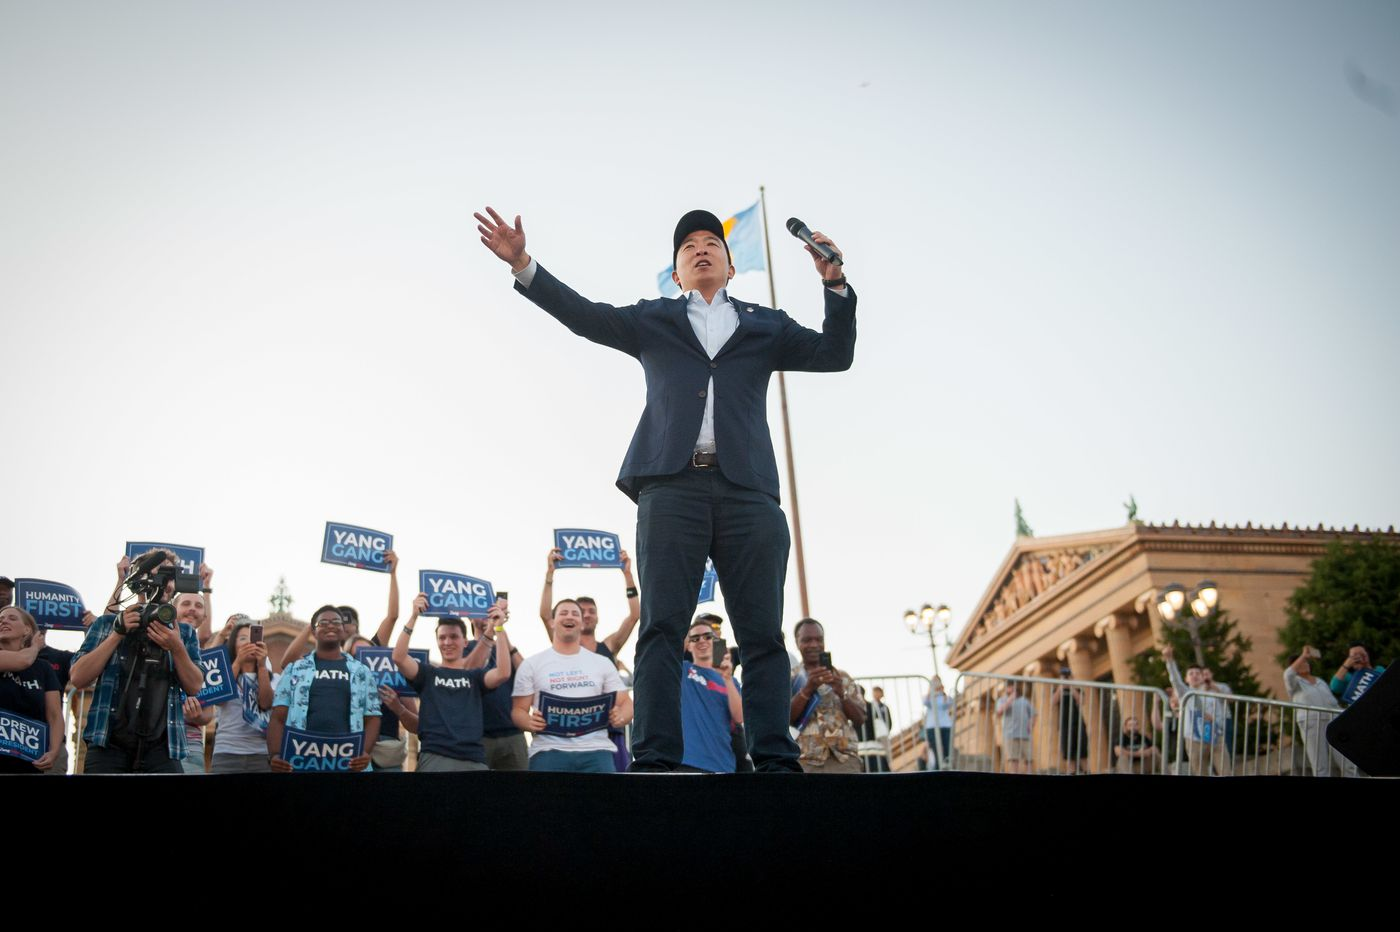 Andrew Yang celebrates 'nerdiest campaign in presidential history' at Rocky steps rally